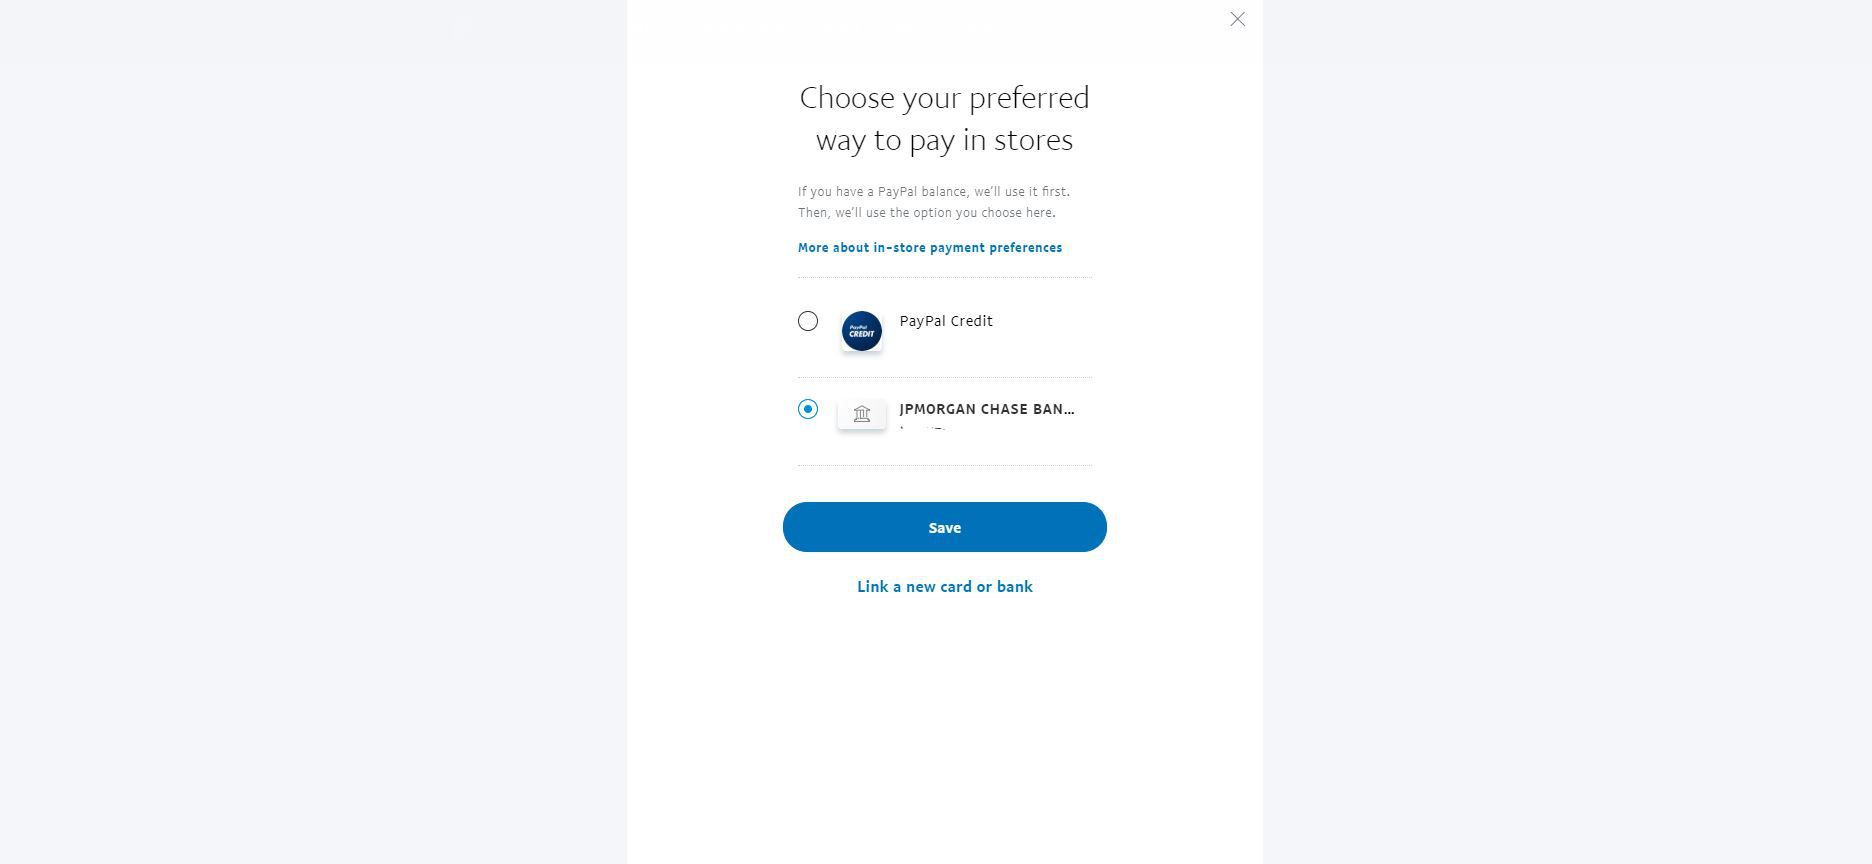 How to Pay with PayPal in Stores